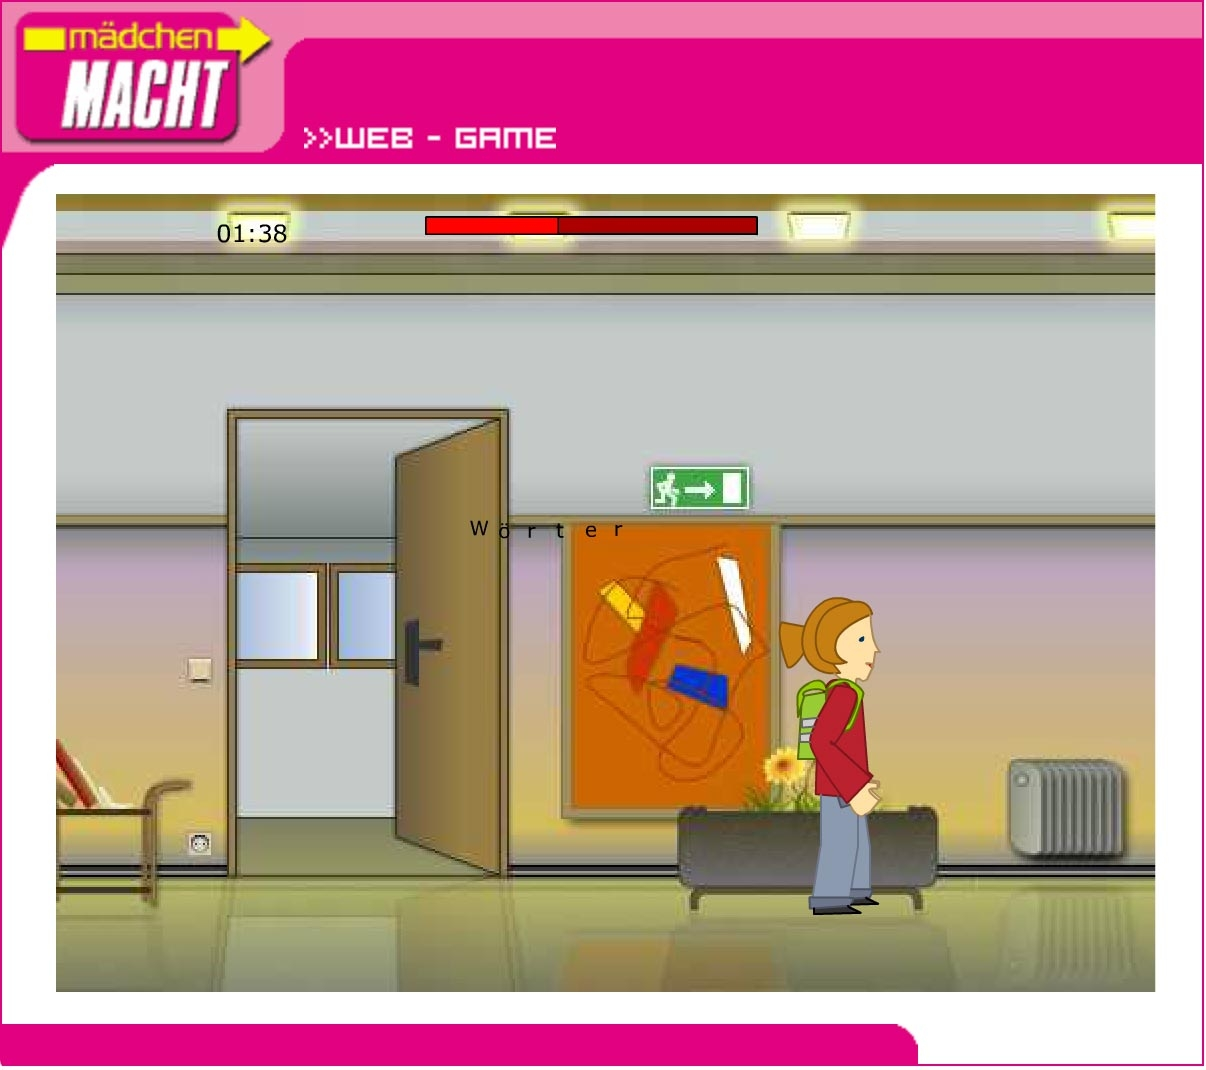 Mädchen macht! | maedchenmacht.at | 2002 | Game (Screen Only 06) © echonet communication